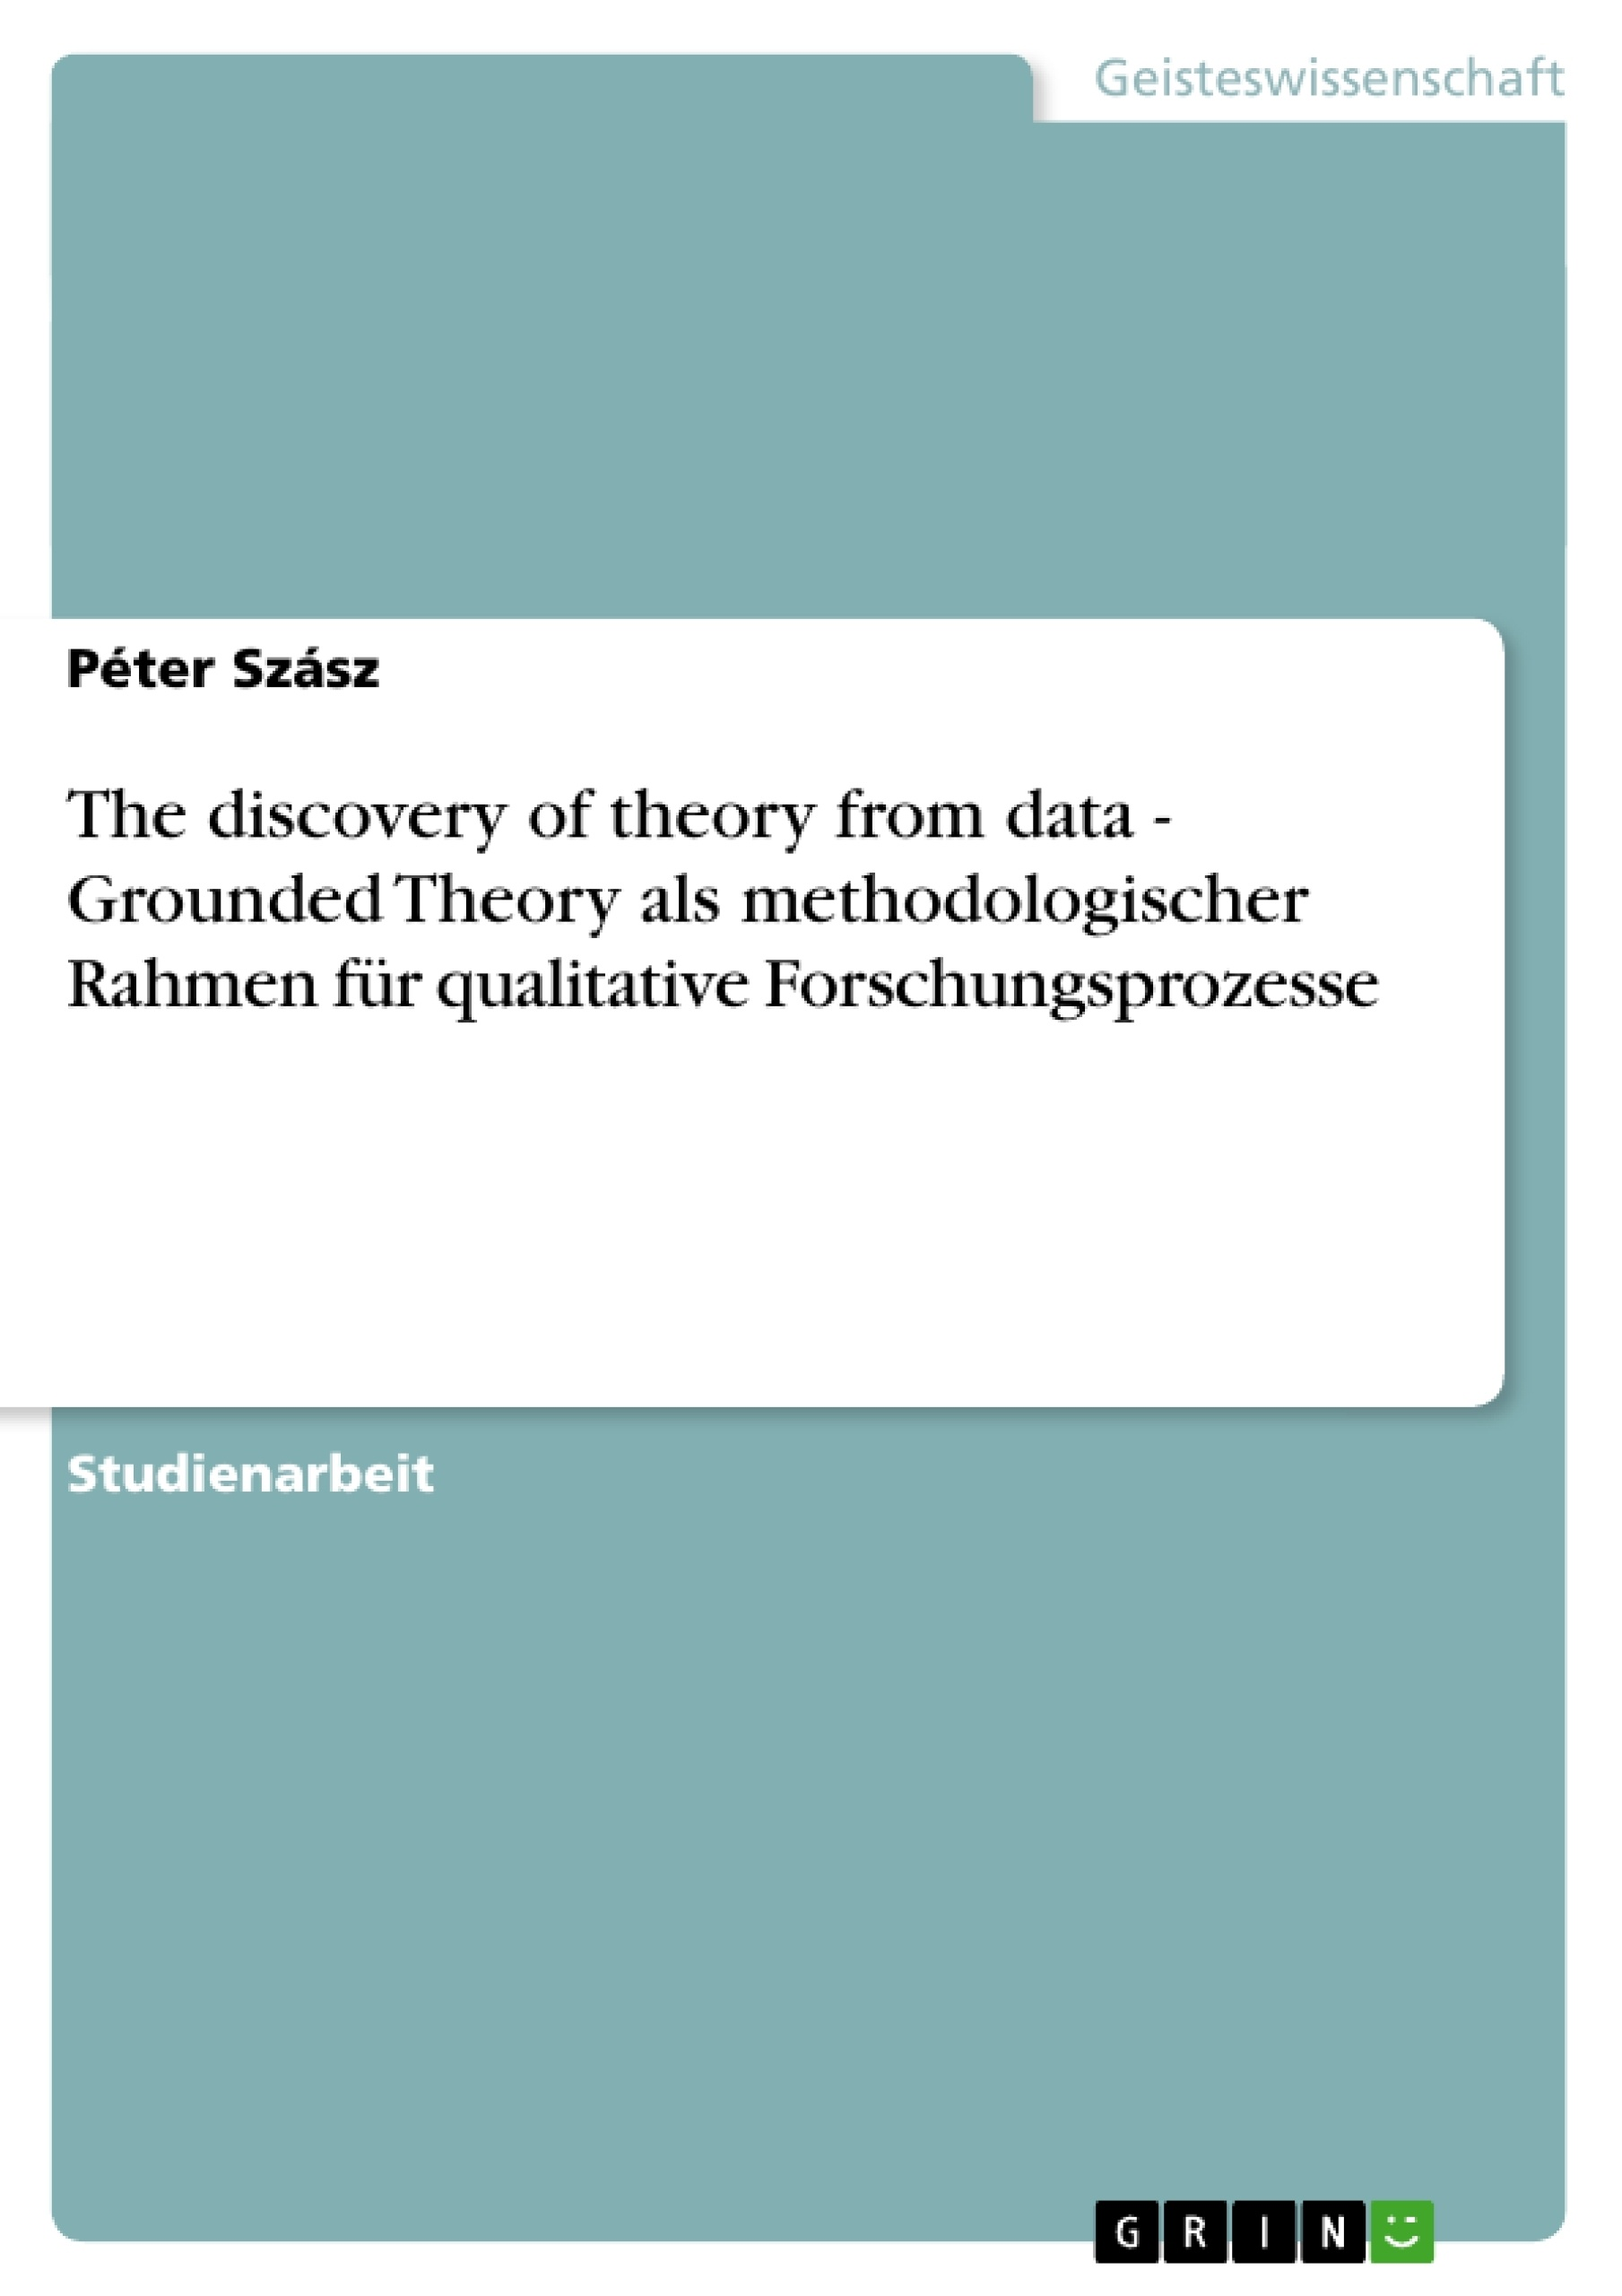 Titel: The discovery of theory from data - Grounded Theory als methodologischer Rahmen für qualitative Forschungsprozesse